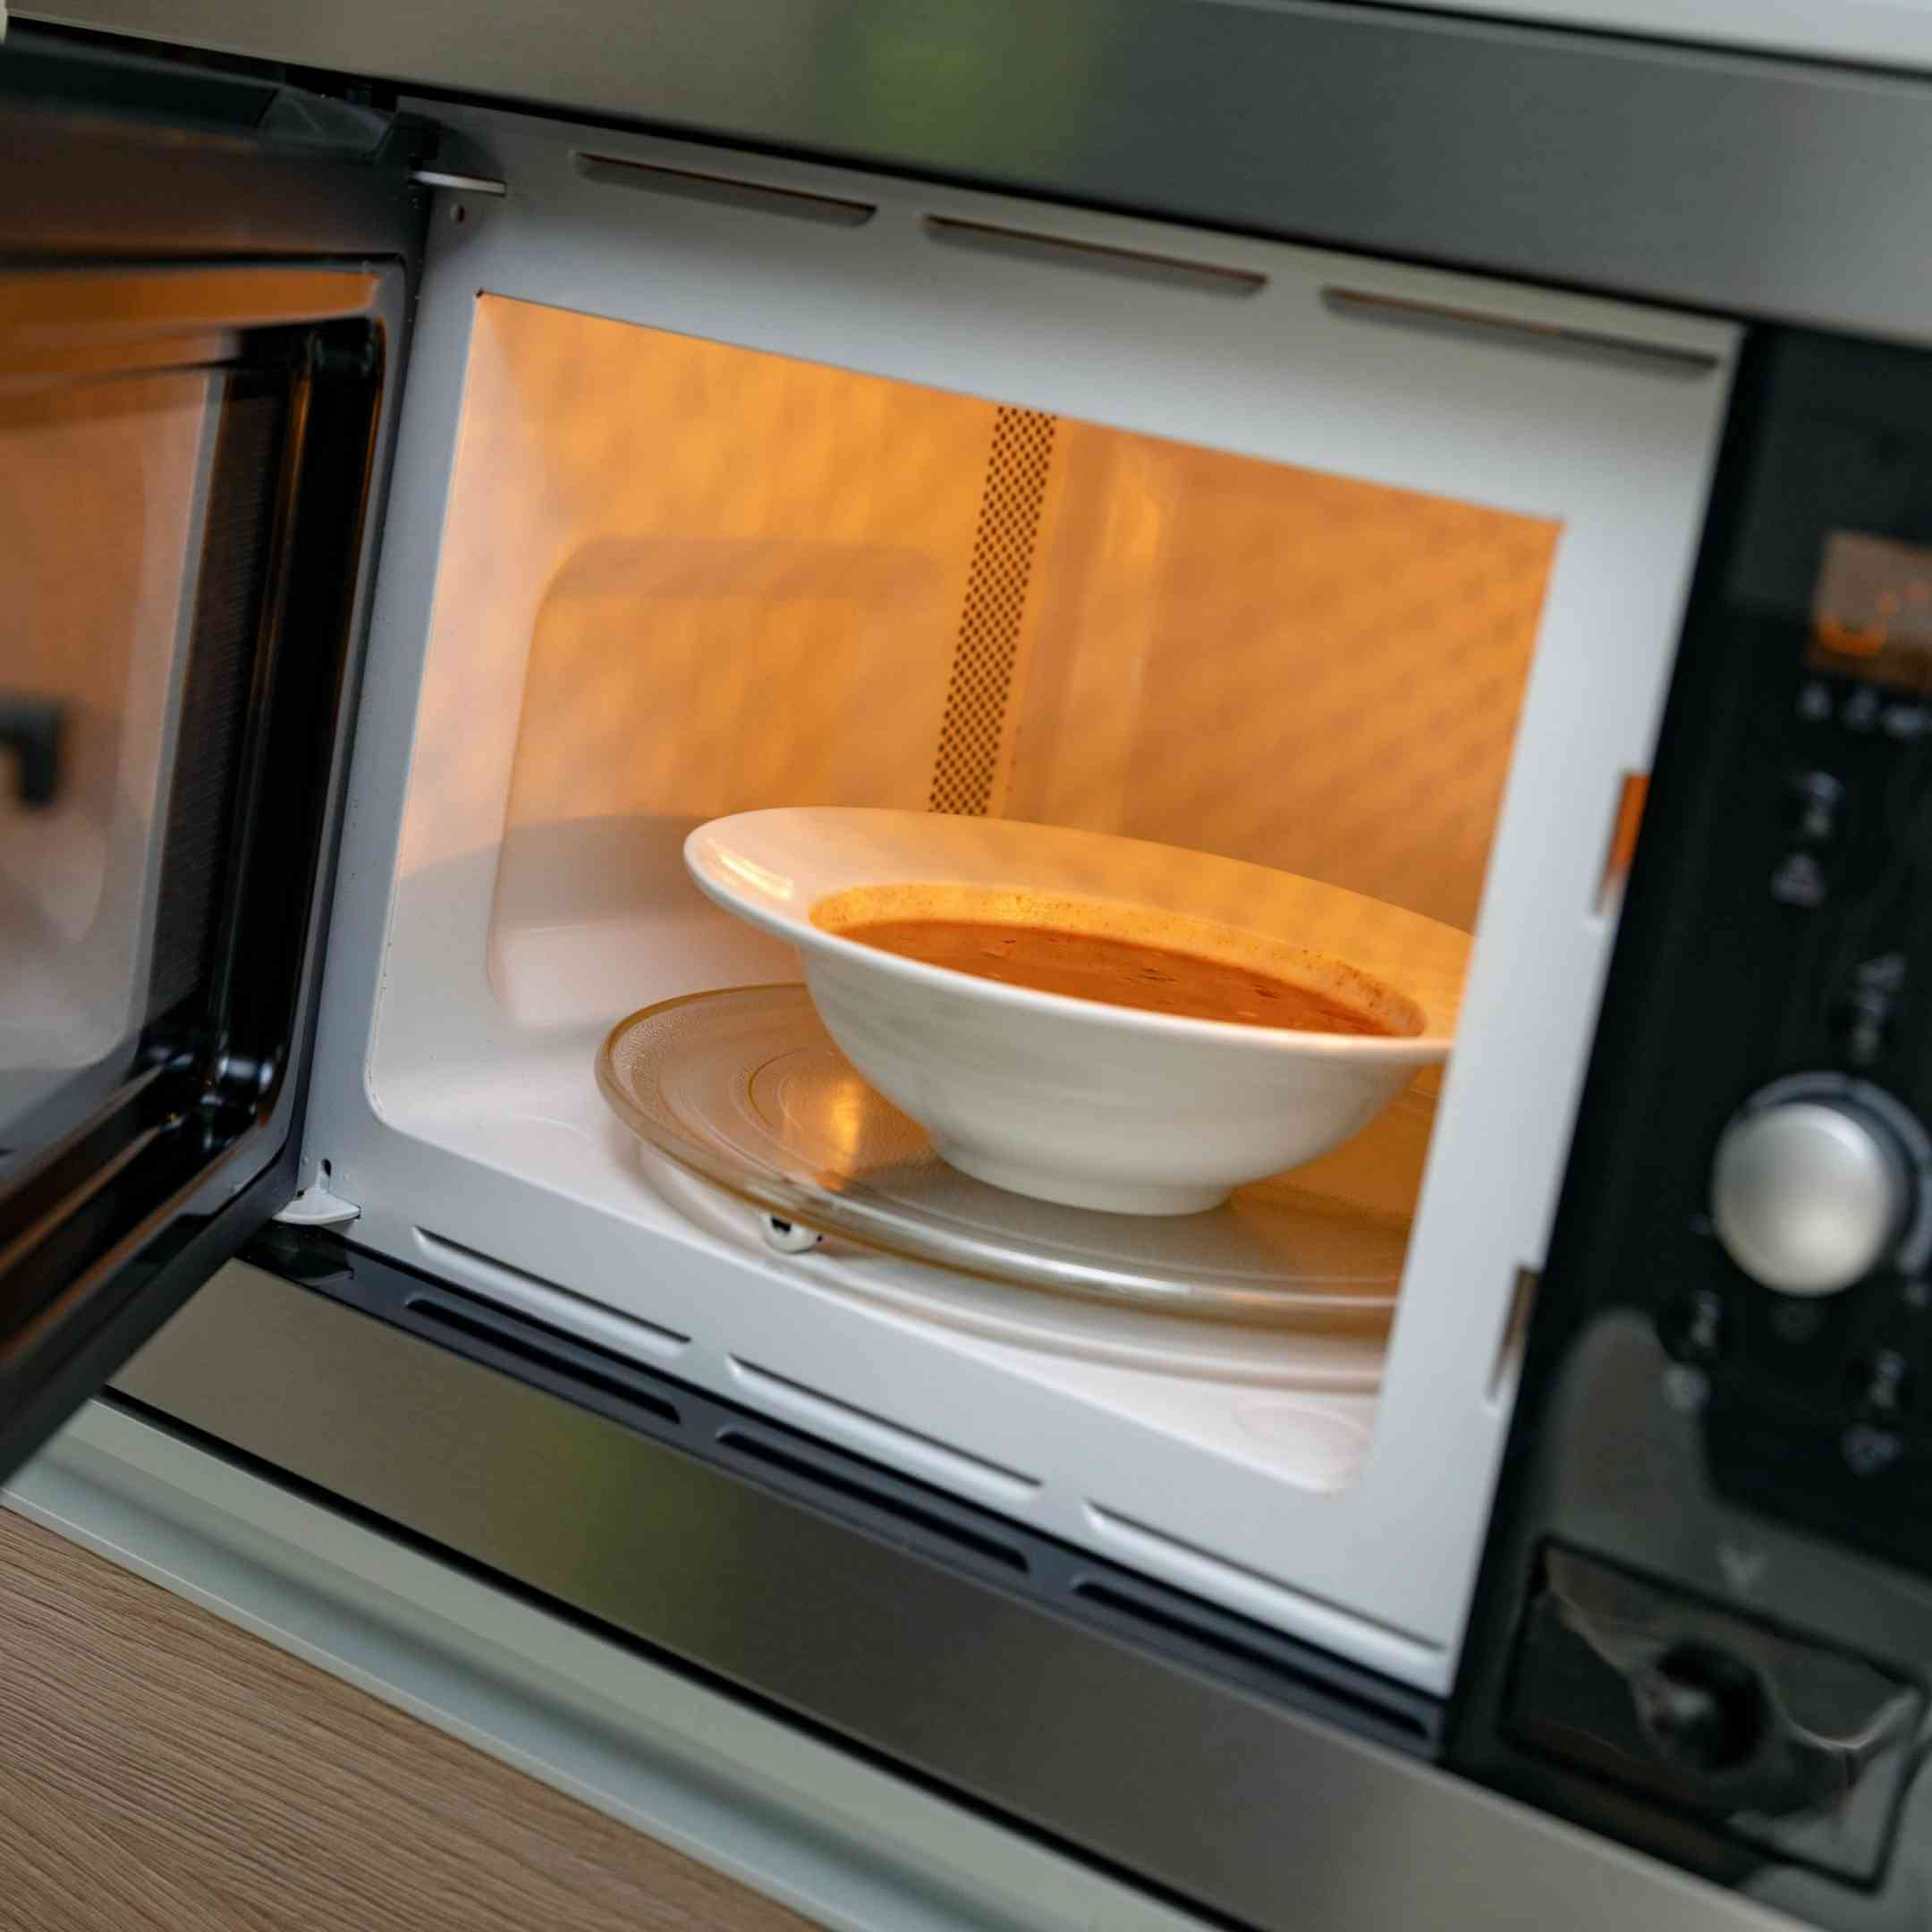 a bowl of soup in the microwave